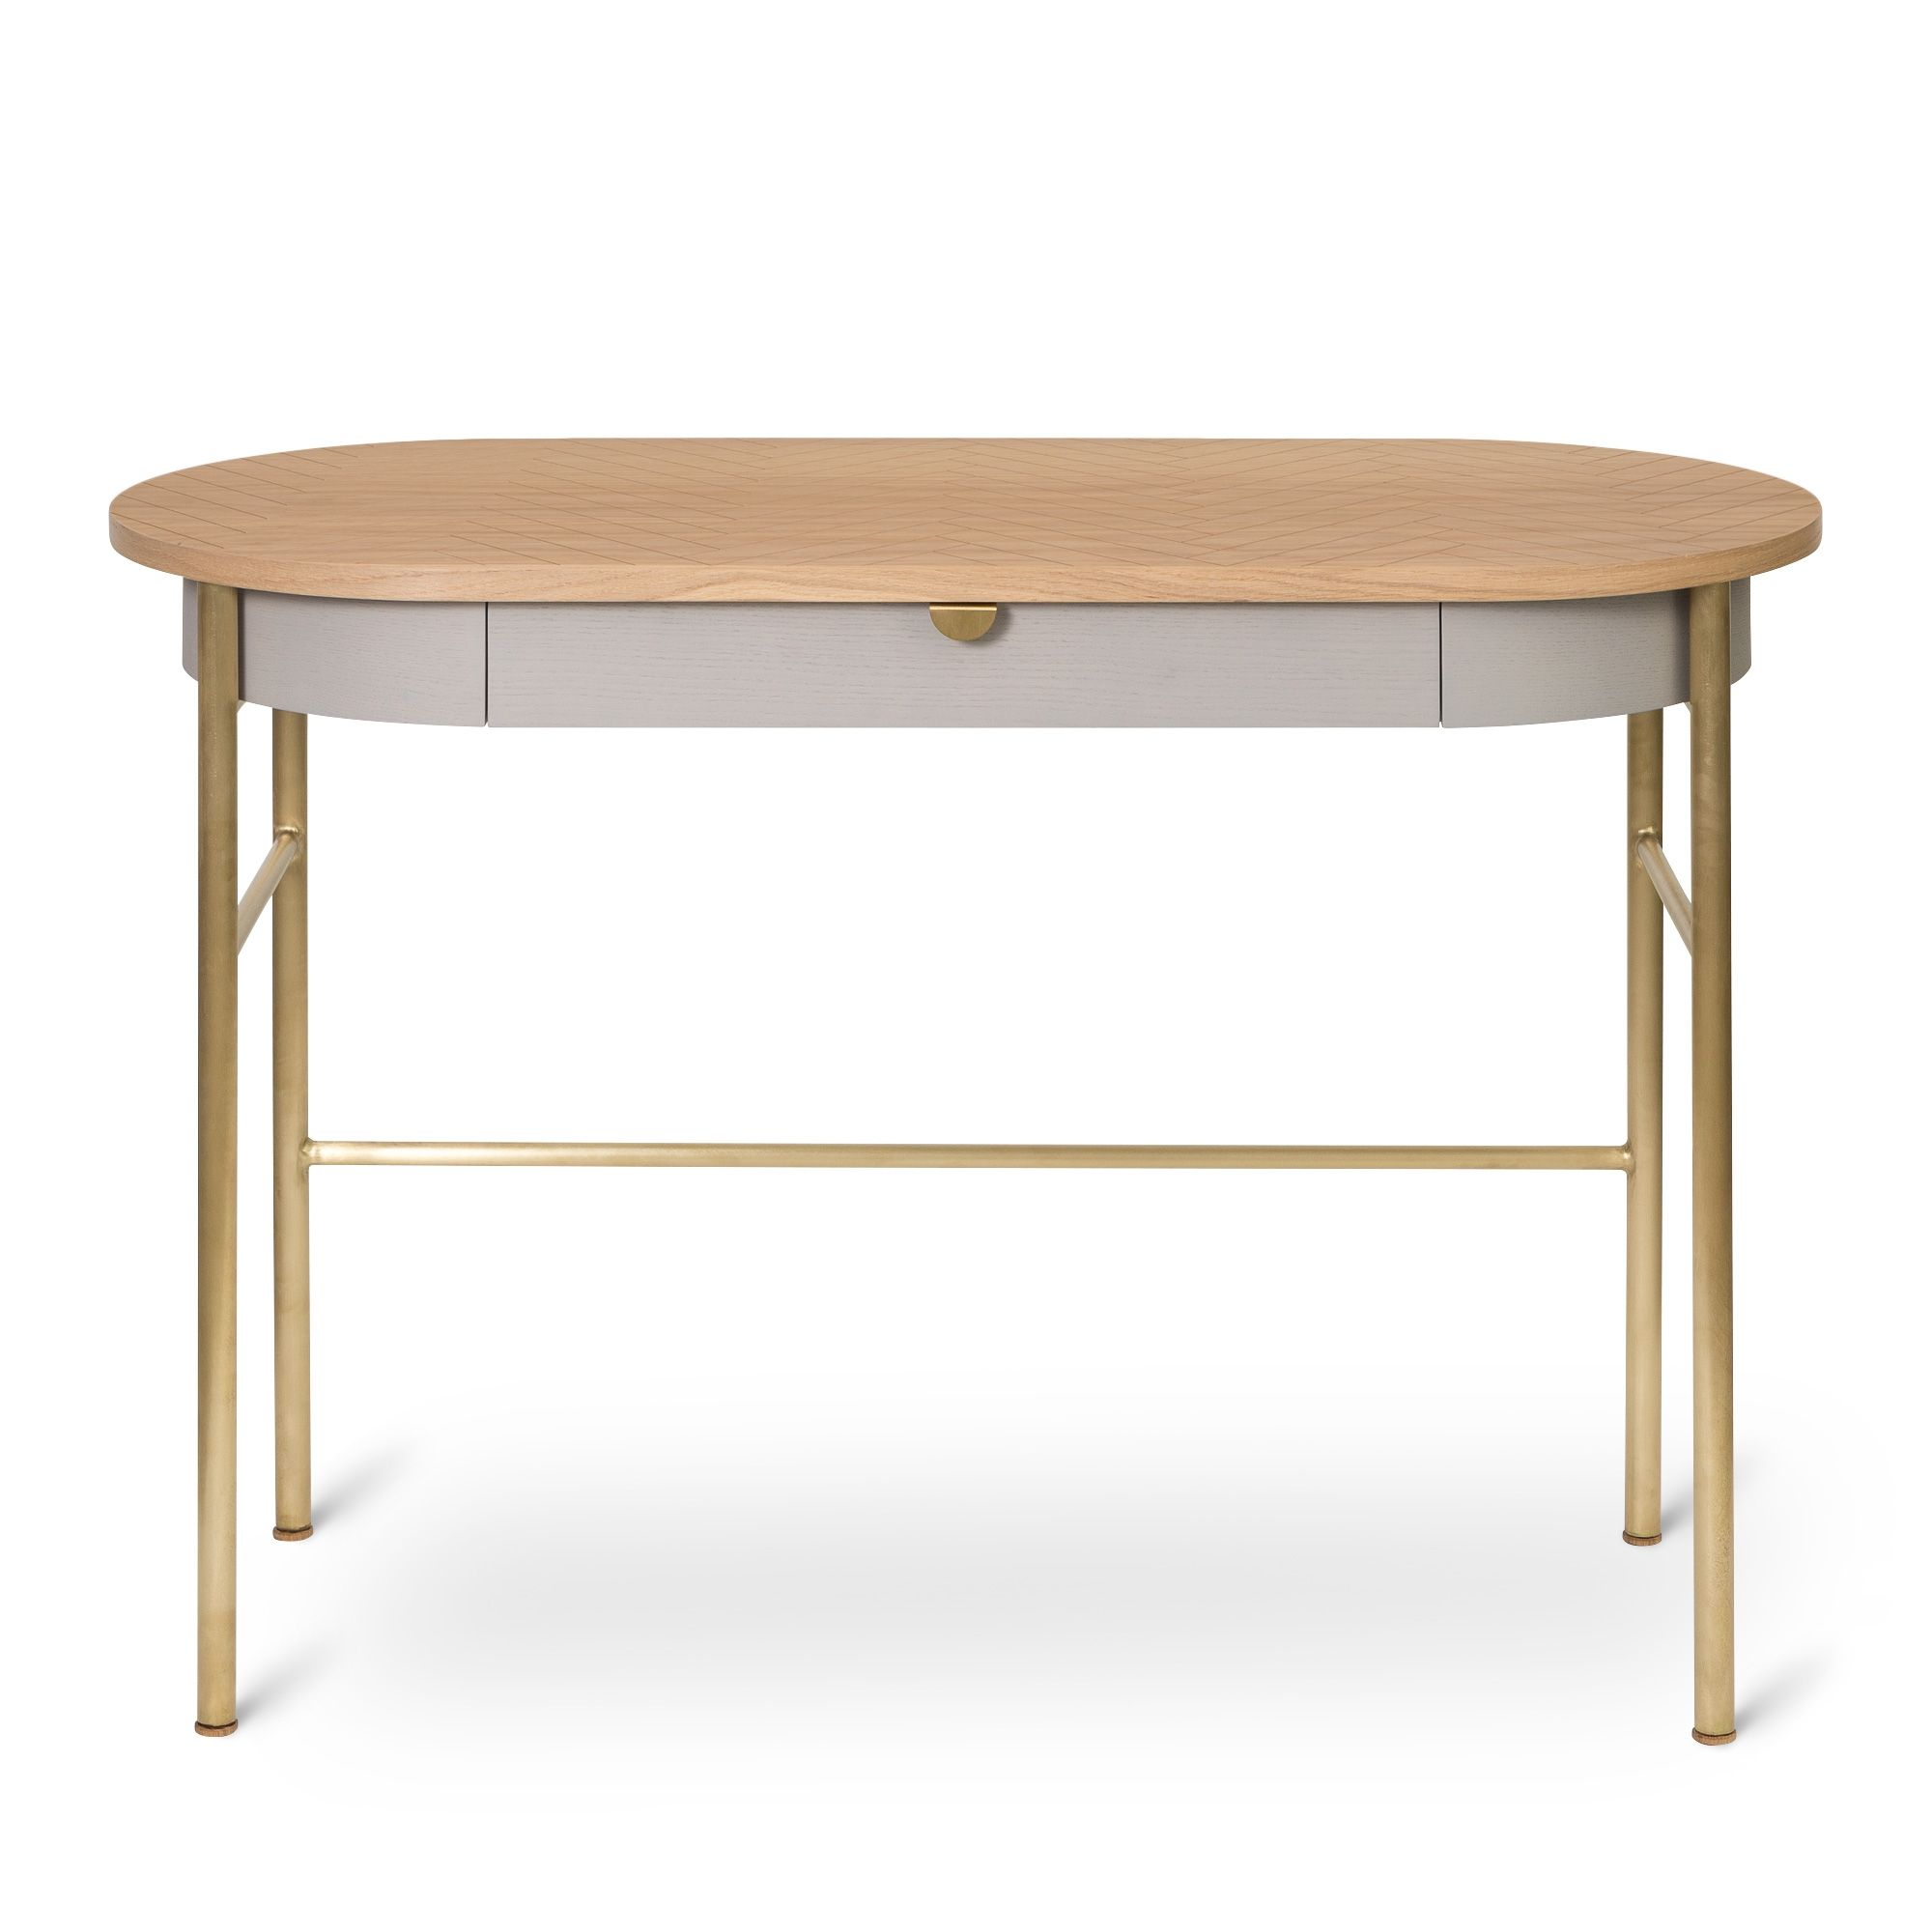 Buy The Natural Oro Dressing Table At Oliver Bonas. We Deliver Furniture  Throughout The UK Within Working Days From